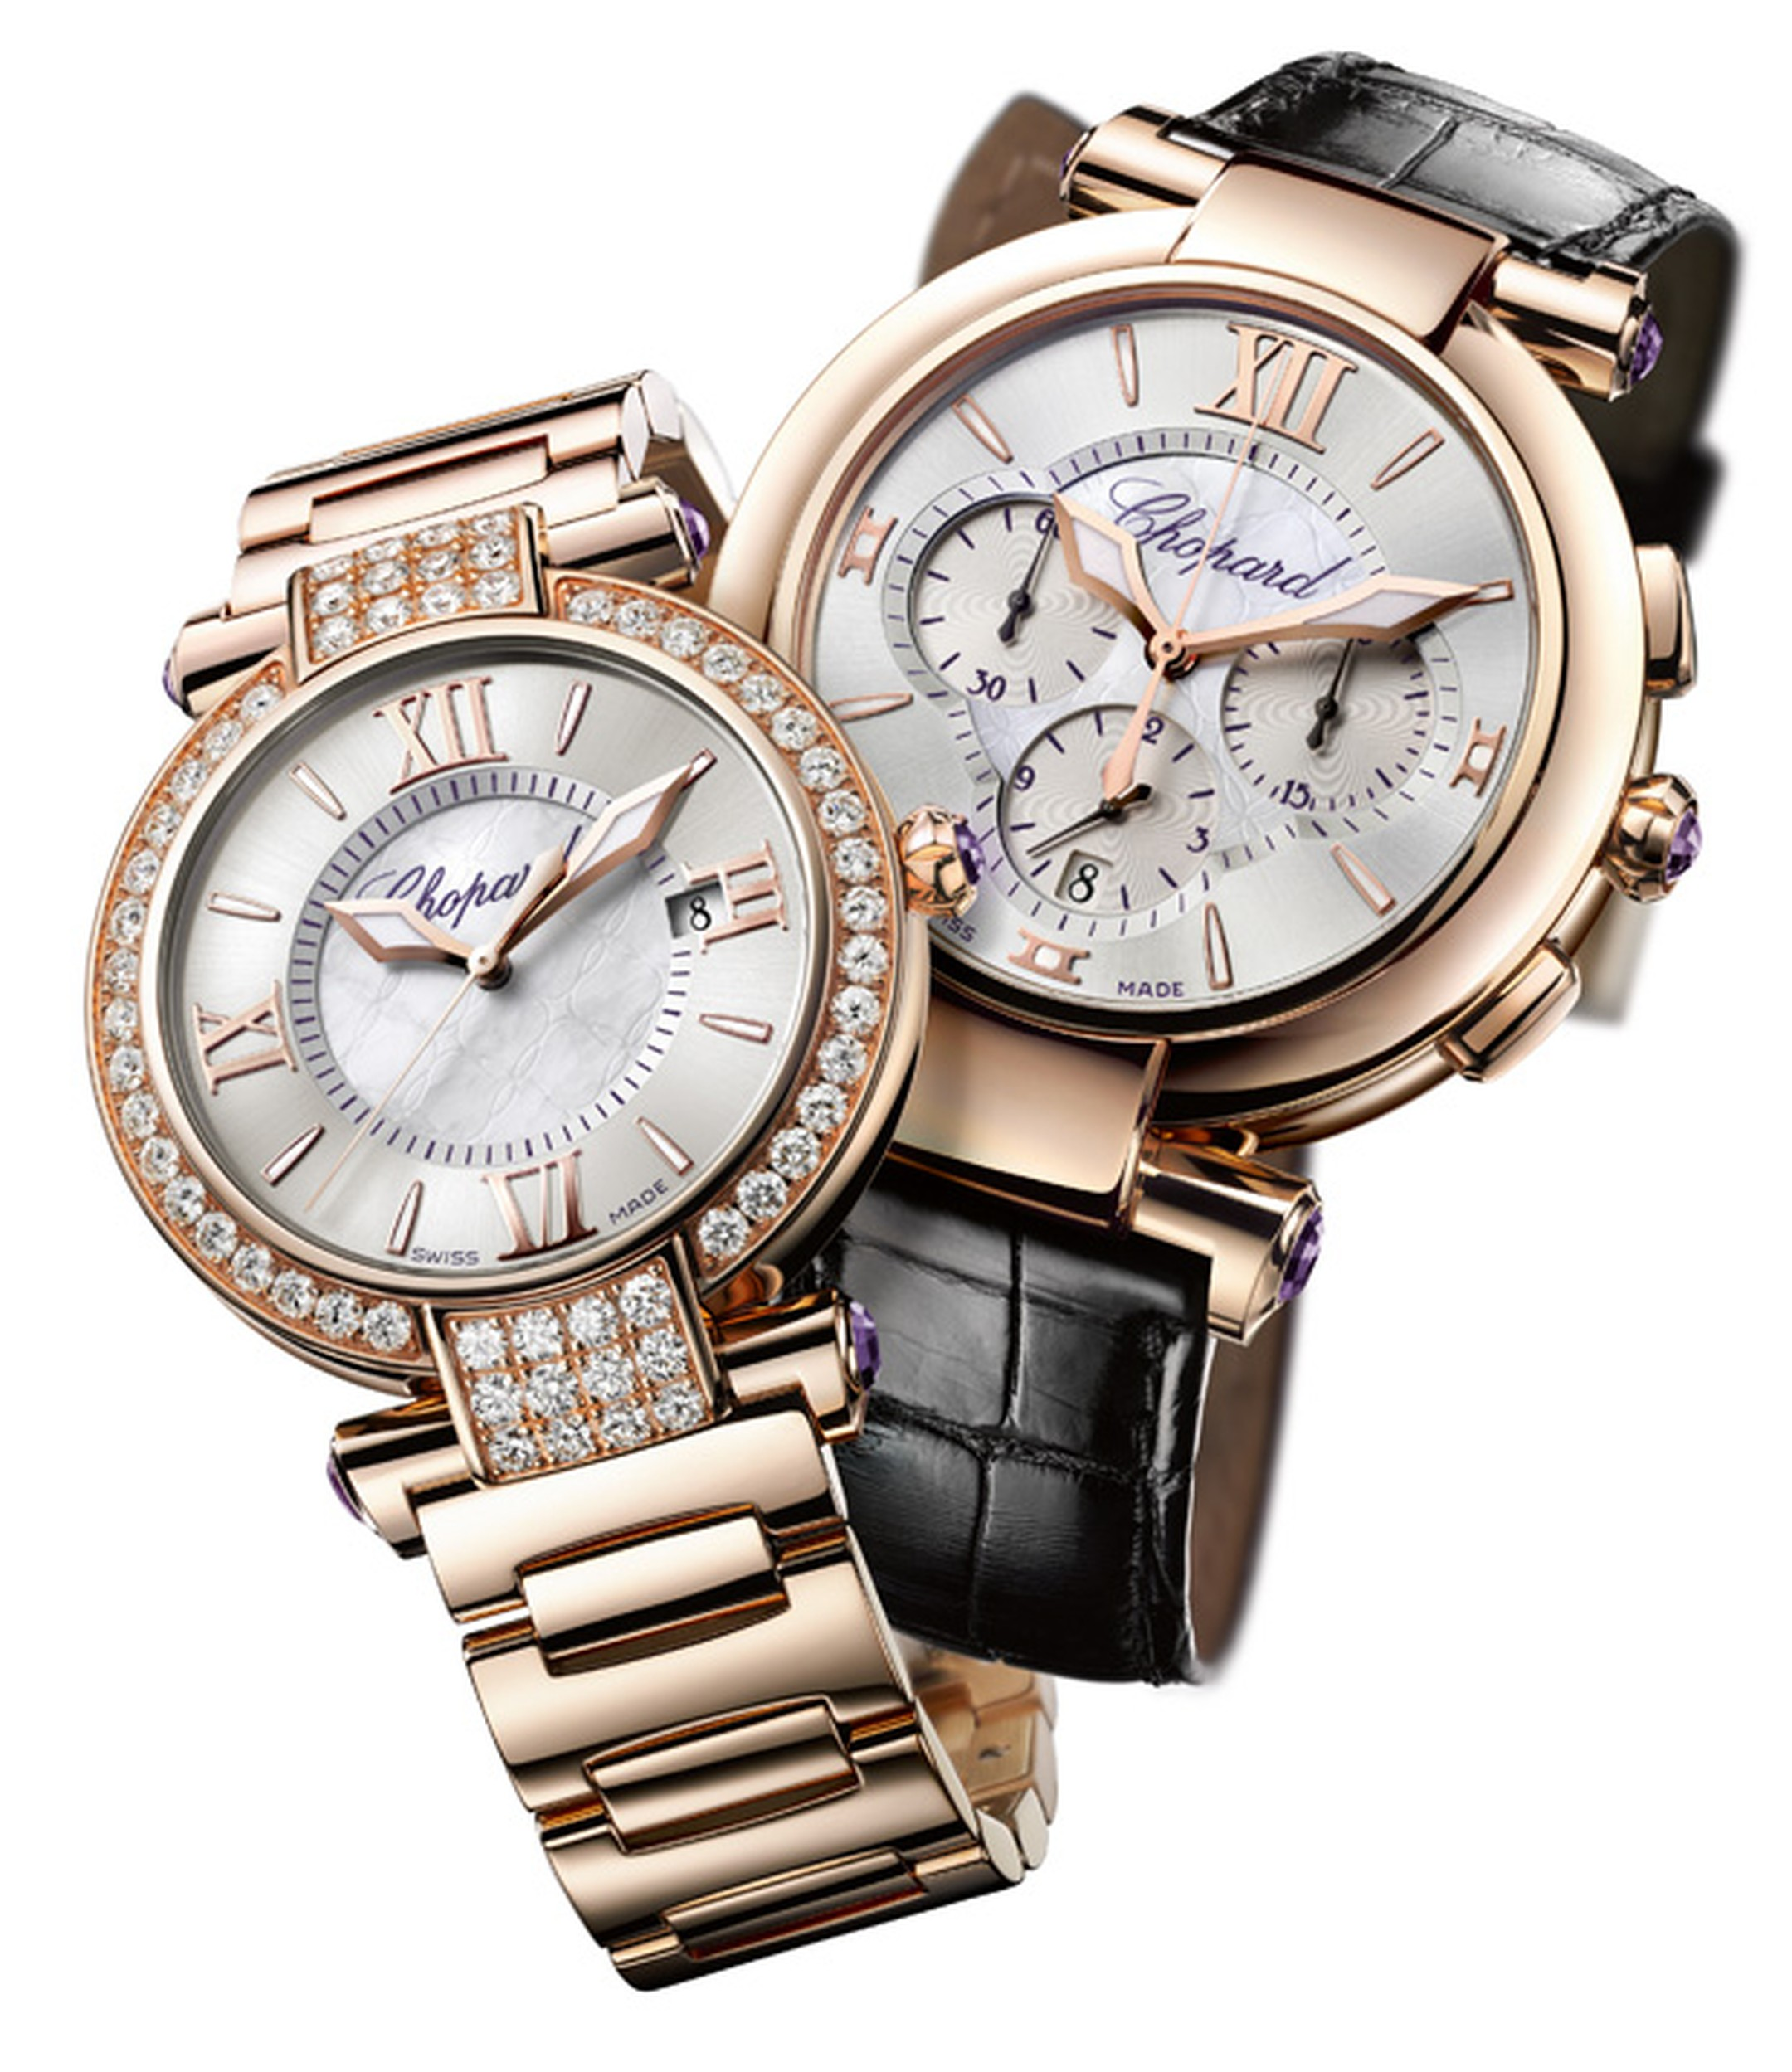 Chopard Imperiale rose gold and diamond and automatic chronograph models